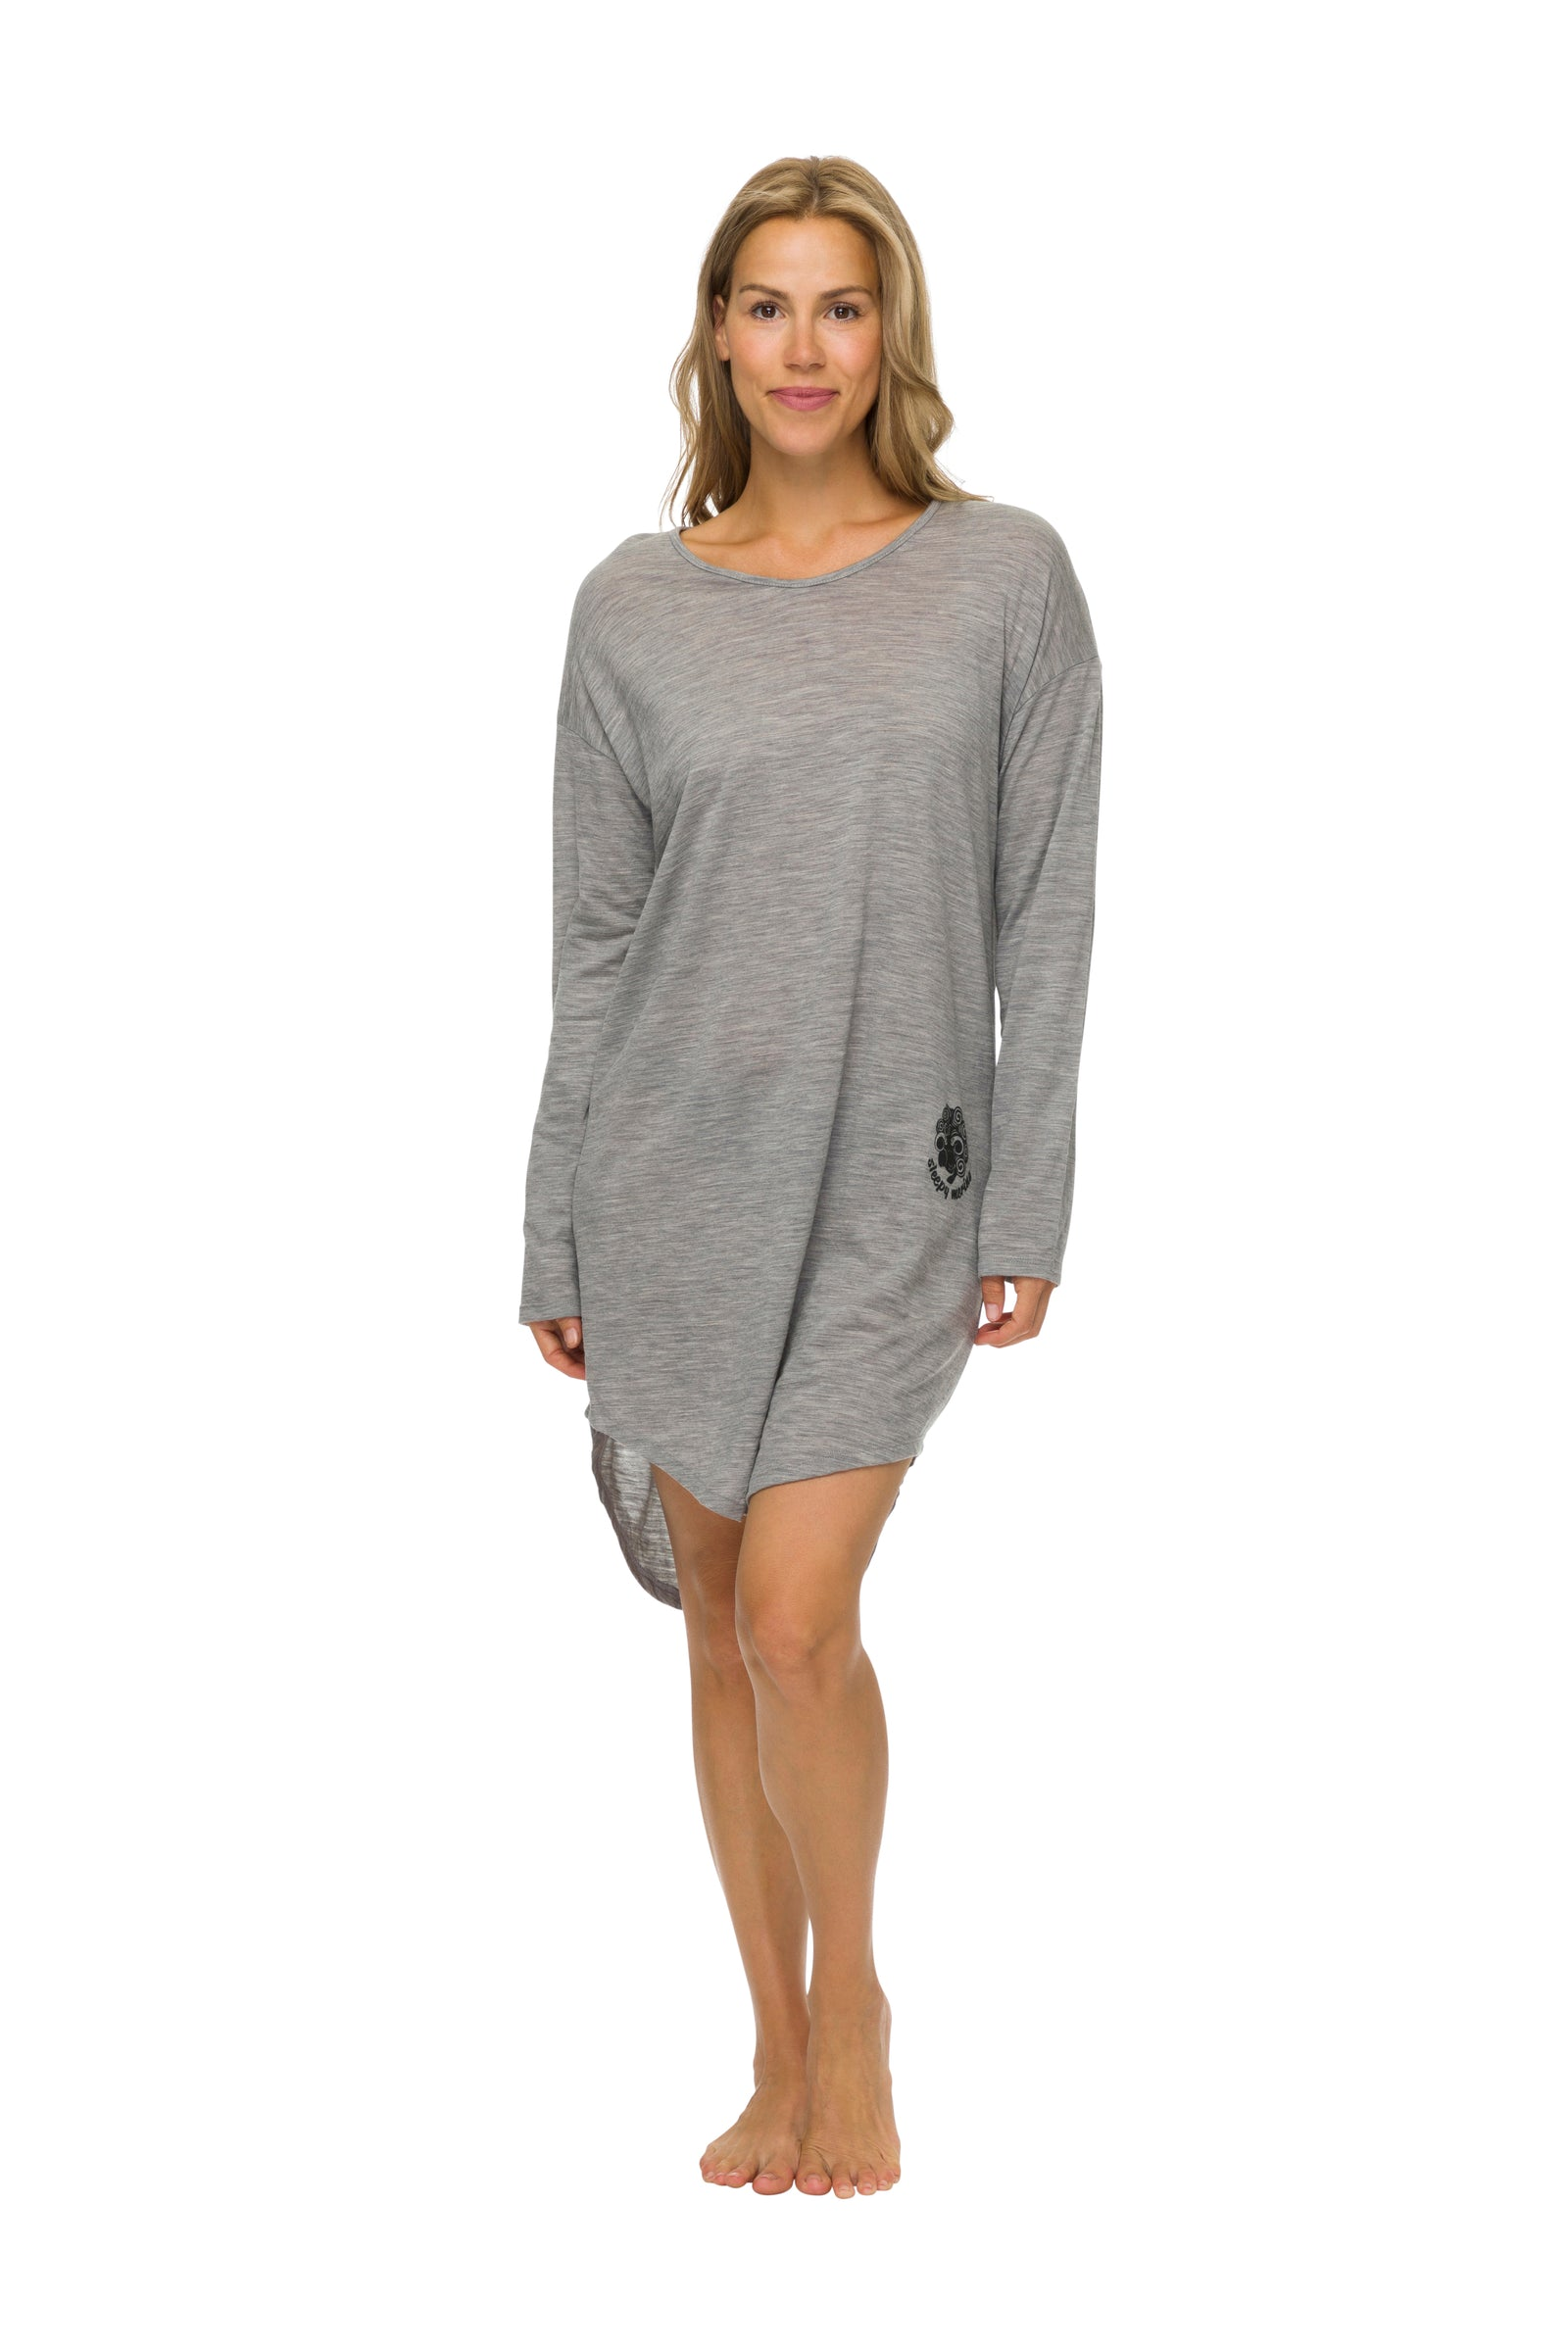 Women's Long Sleeve Sleepshirt | 100% Merino Wool Grey Marle